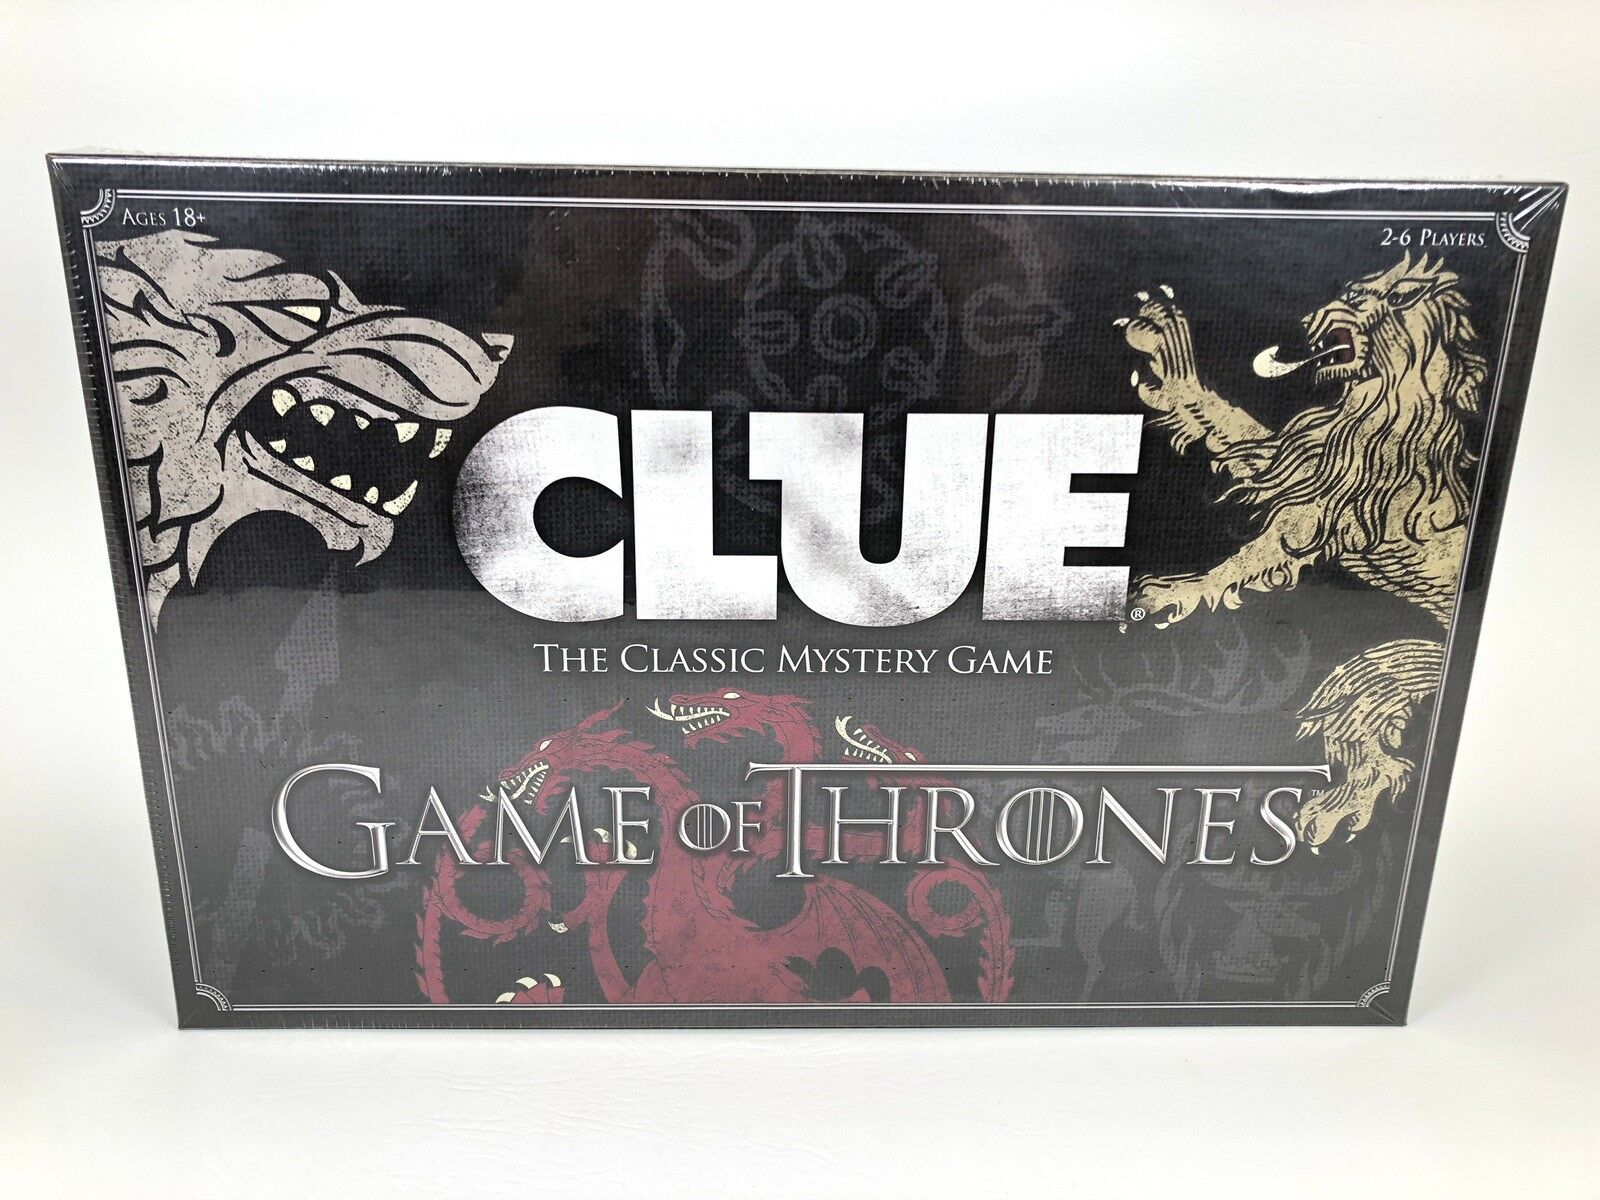 Hinweis game of thrones hab hbo tv - show - reihe mystery spiel hasbro 6vfszv2